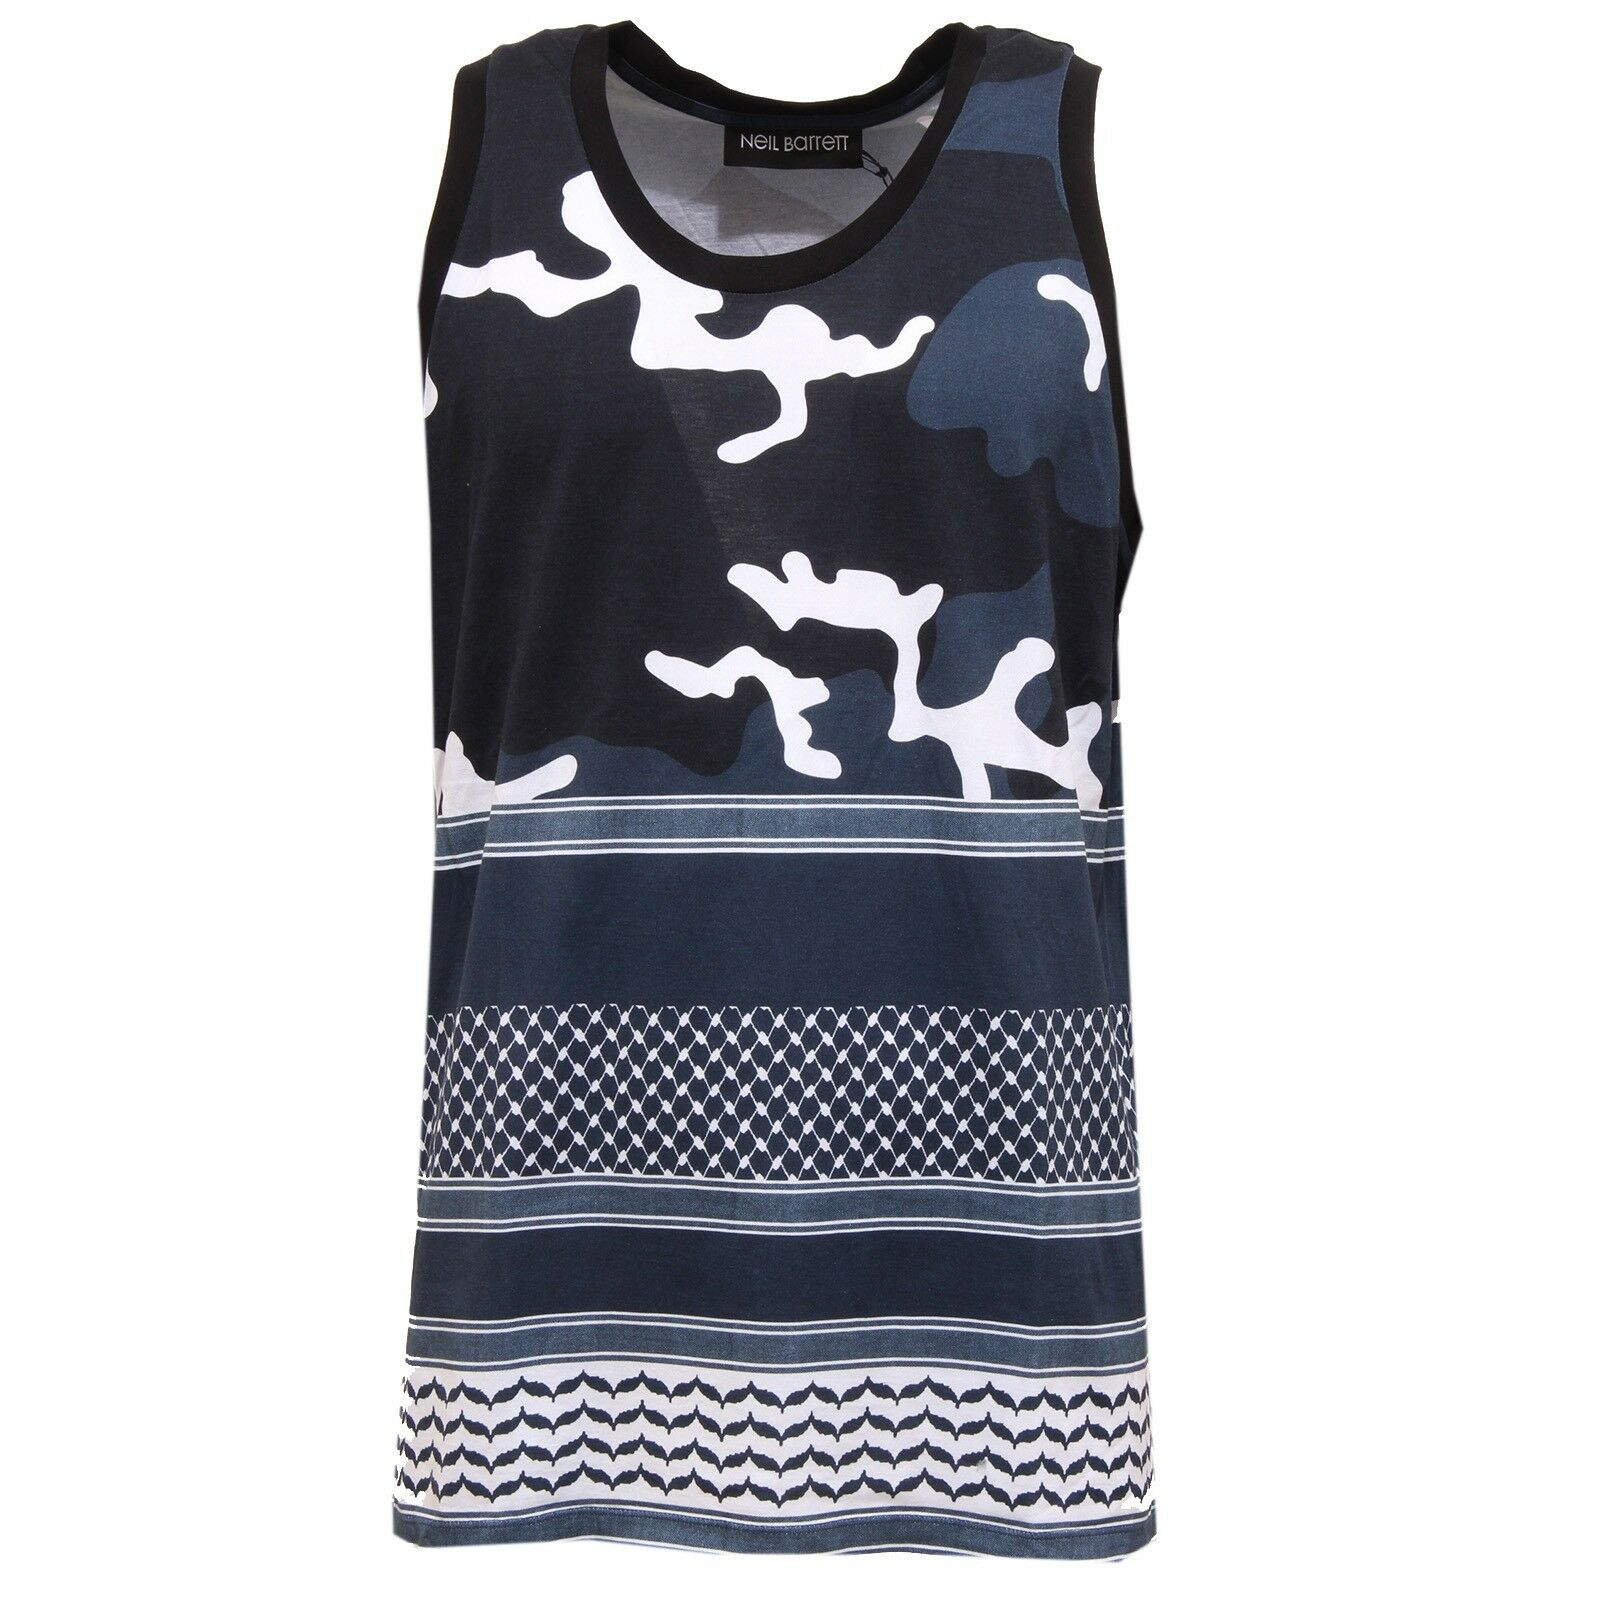 5838T canottiera uomo NEIL BARRETT camouflage blu t-shirt sleeveless men